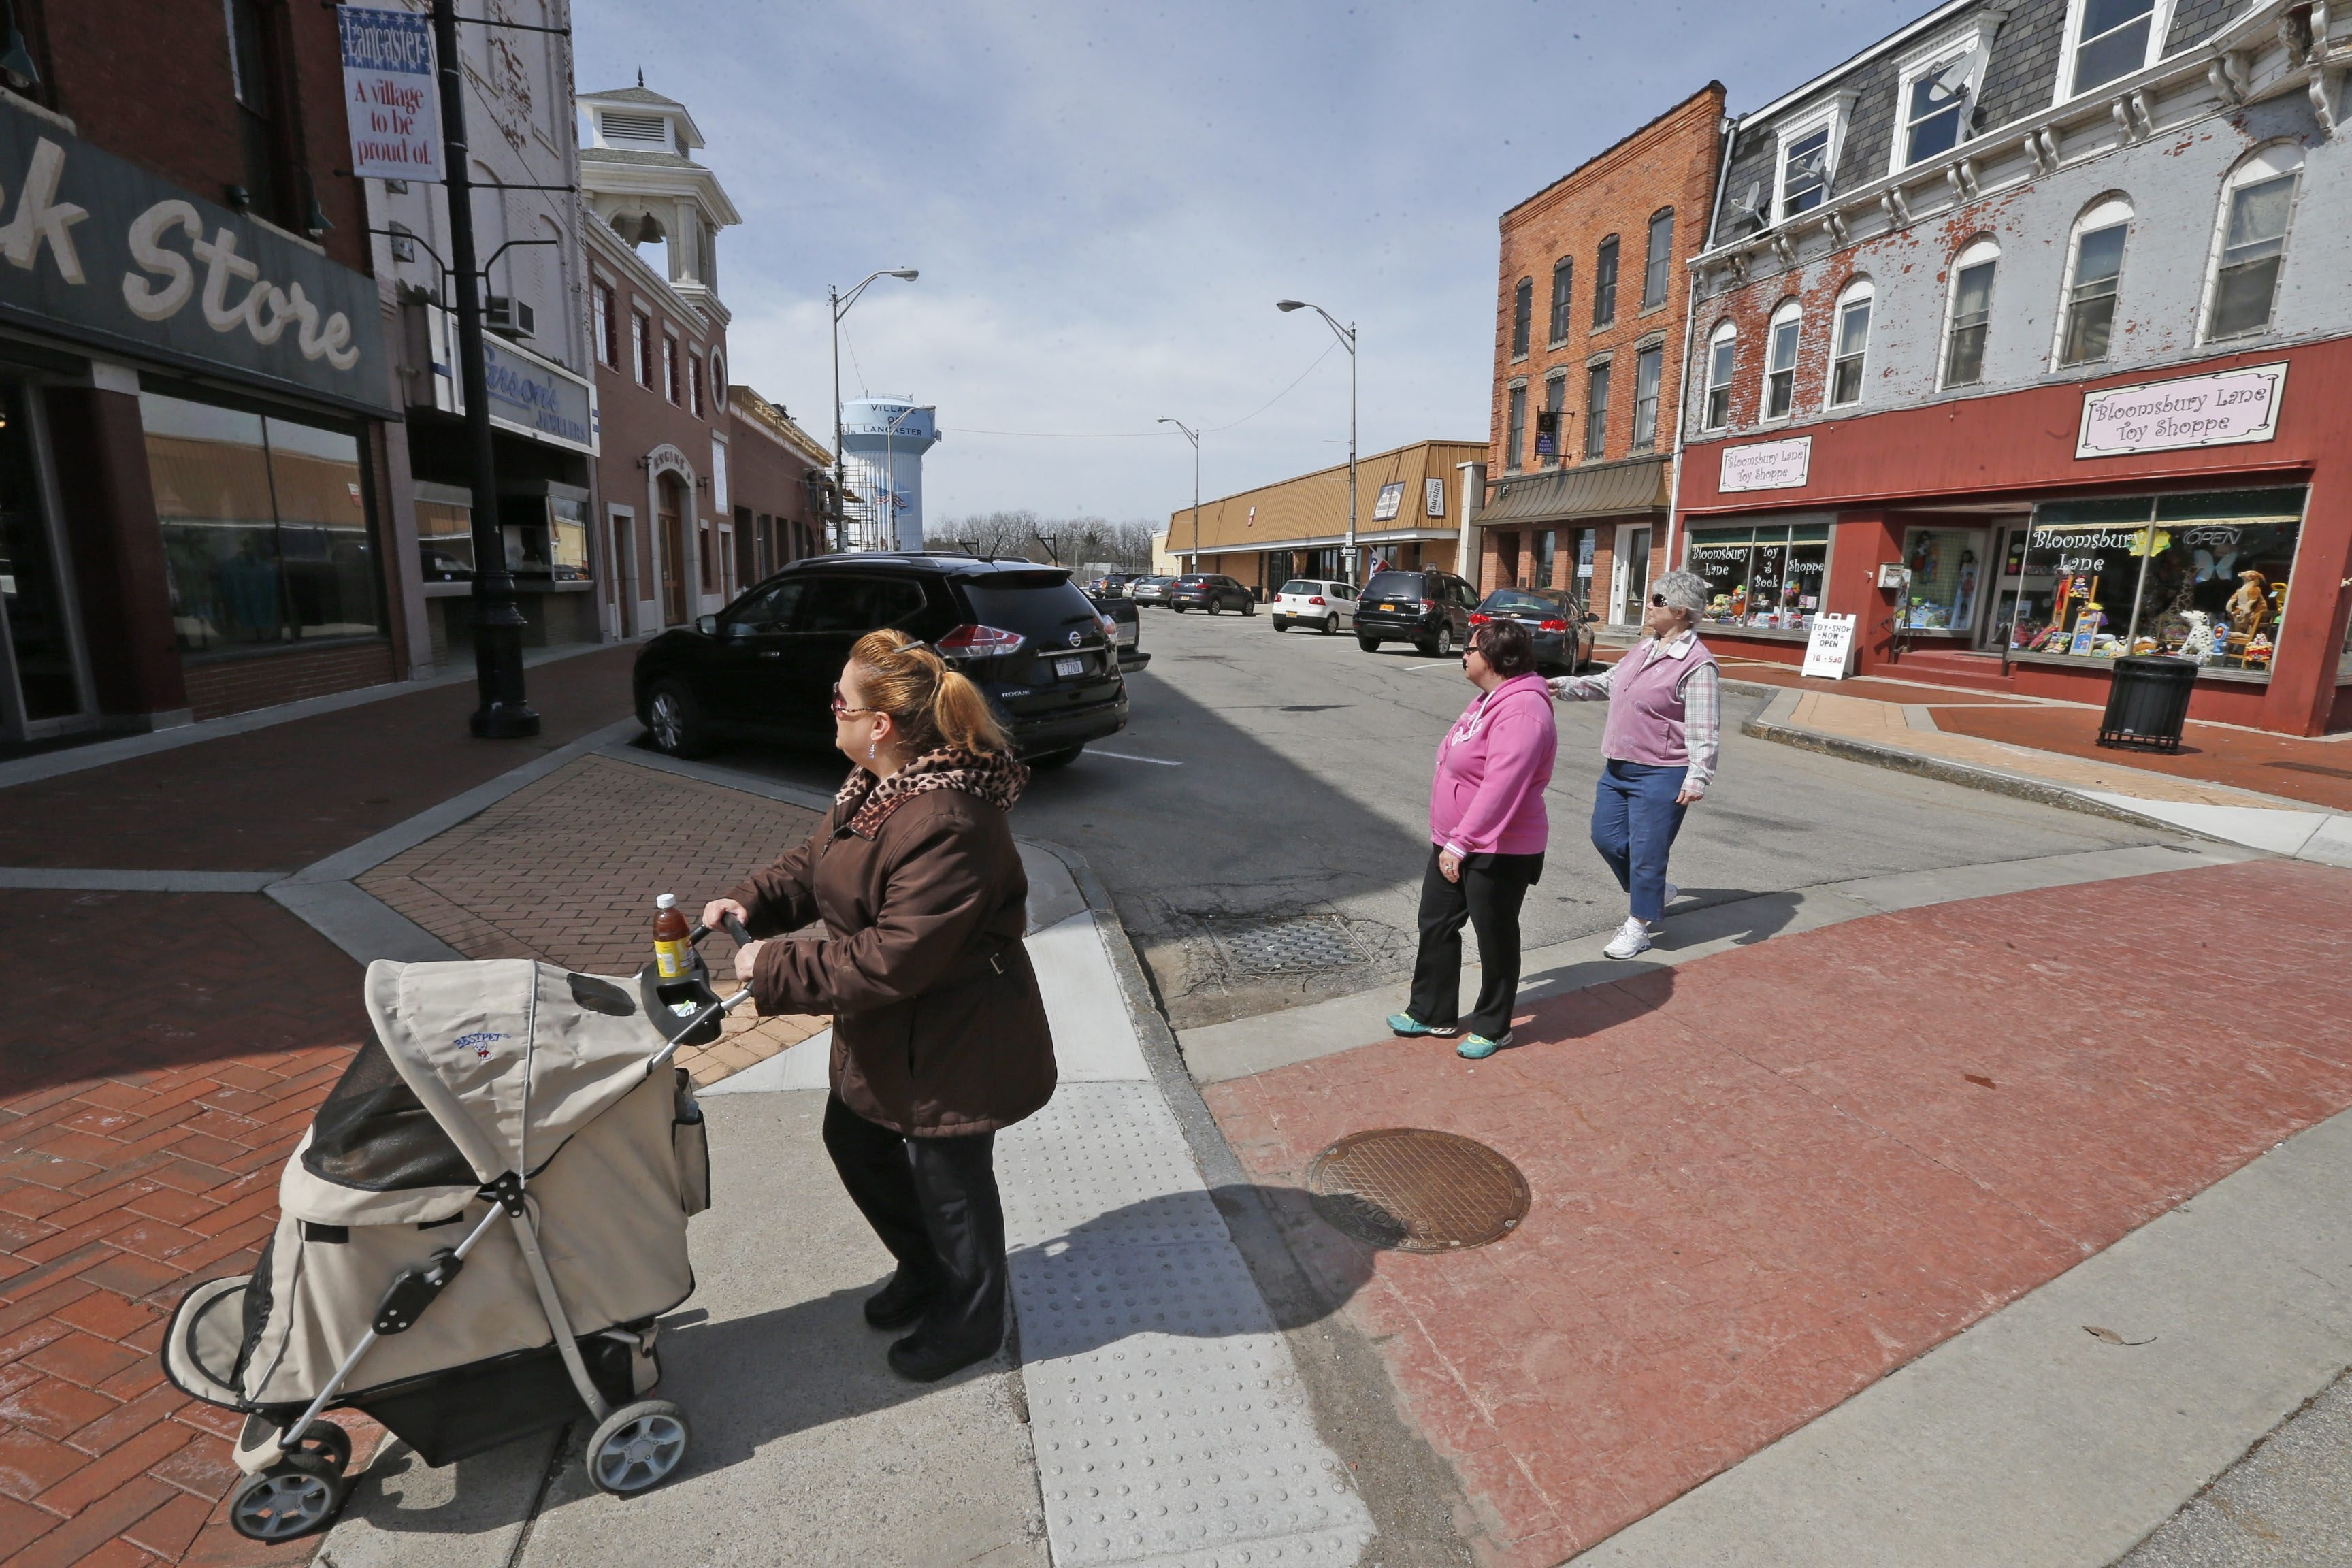 """The Village of Lancaster is not going to dump $3 million into a dream,"" Trustee William C. Schroeder said of a Facebook community group seeking to extend West Main Street past the dead end, shown here."